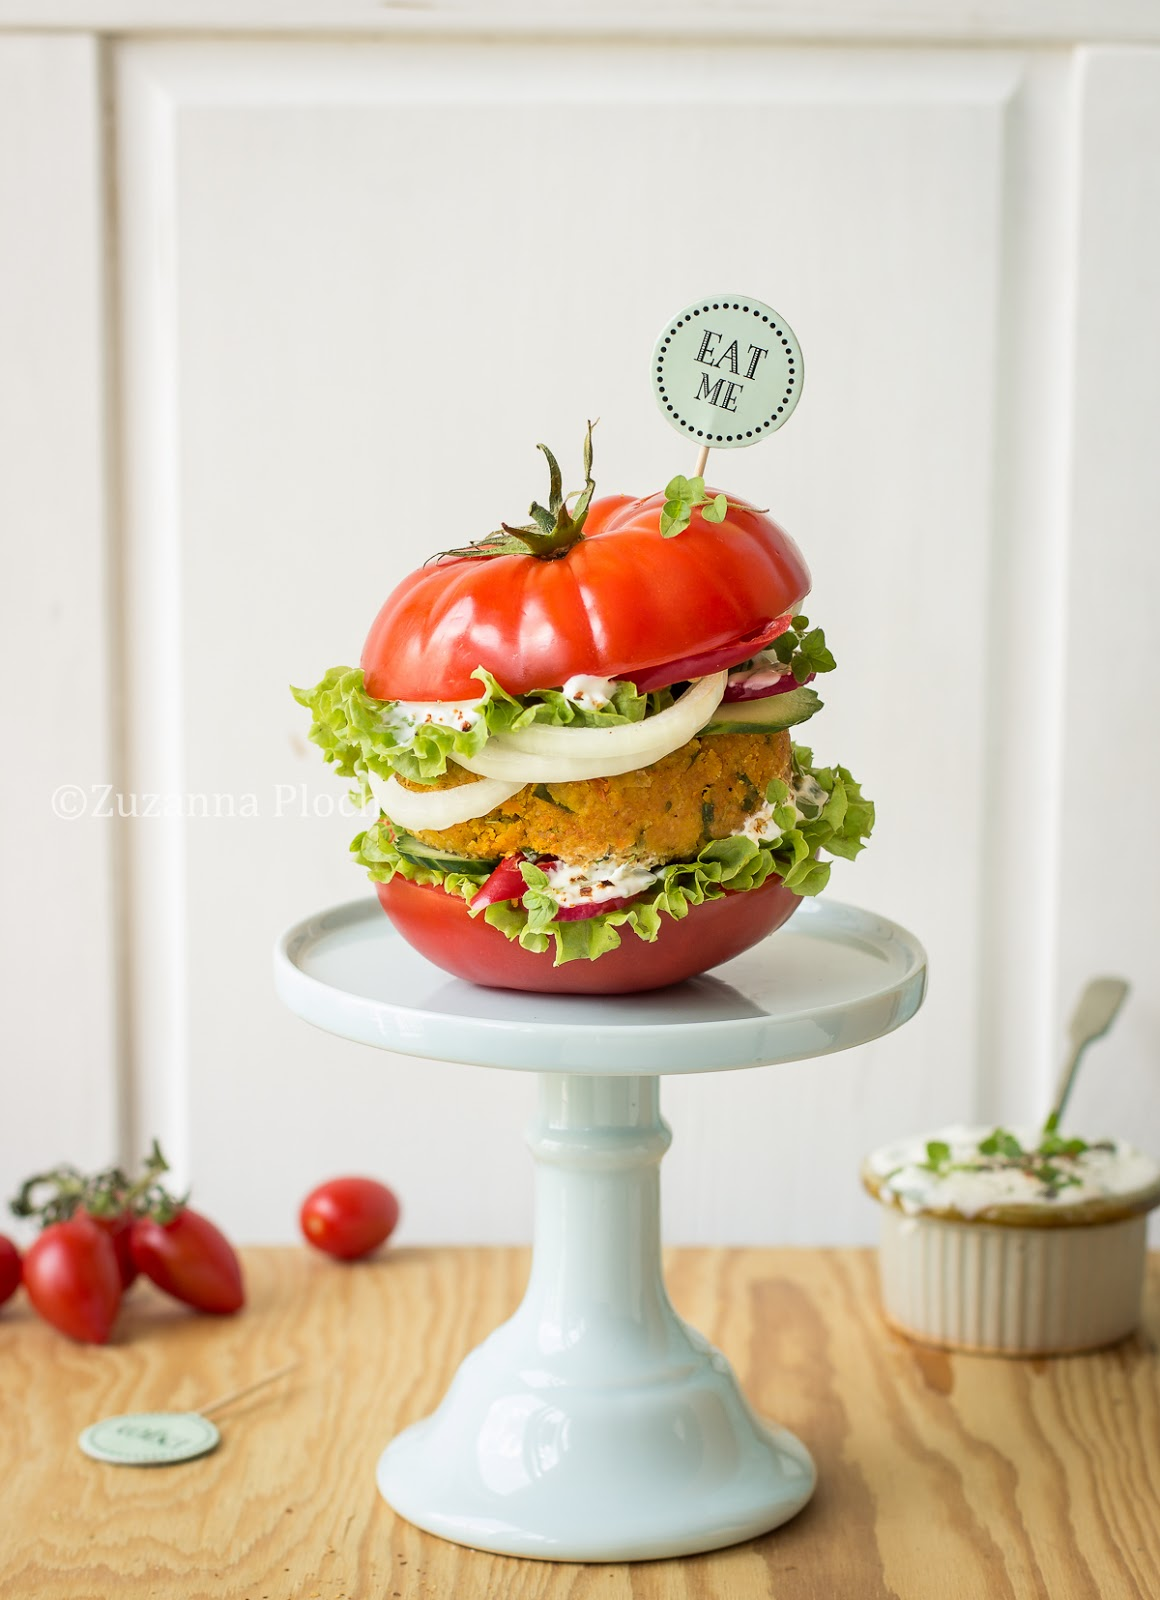 tomato burger - food photography by Zuzanna Ploch, fotografia kulinarna